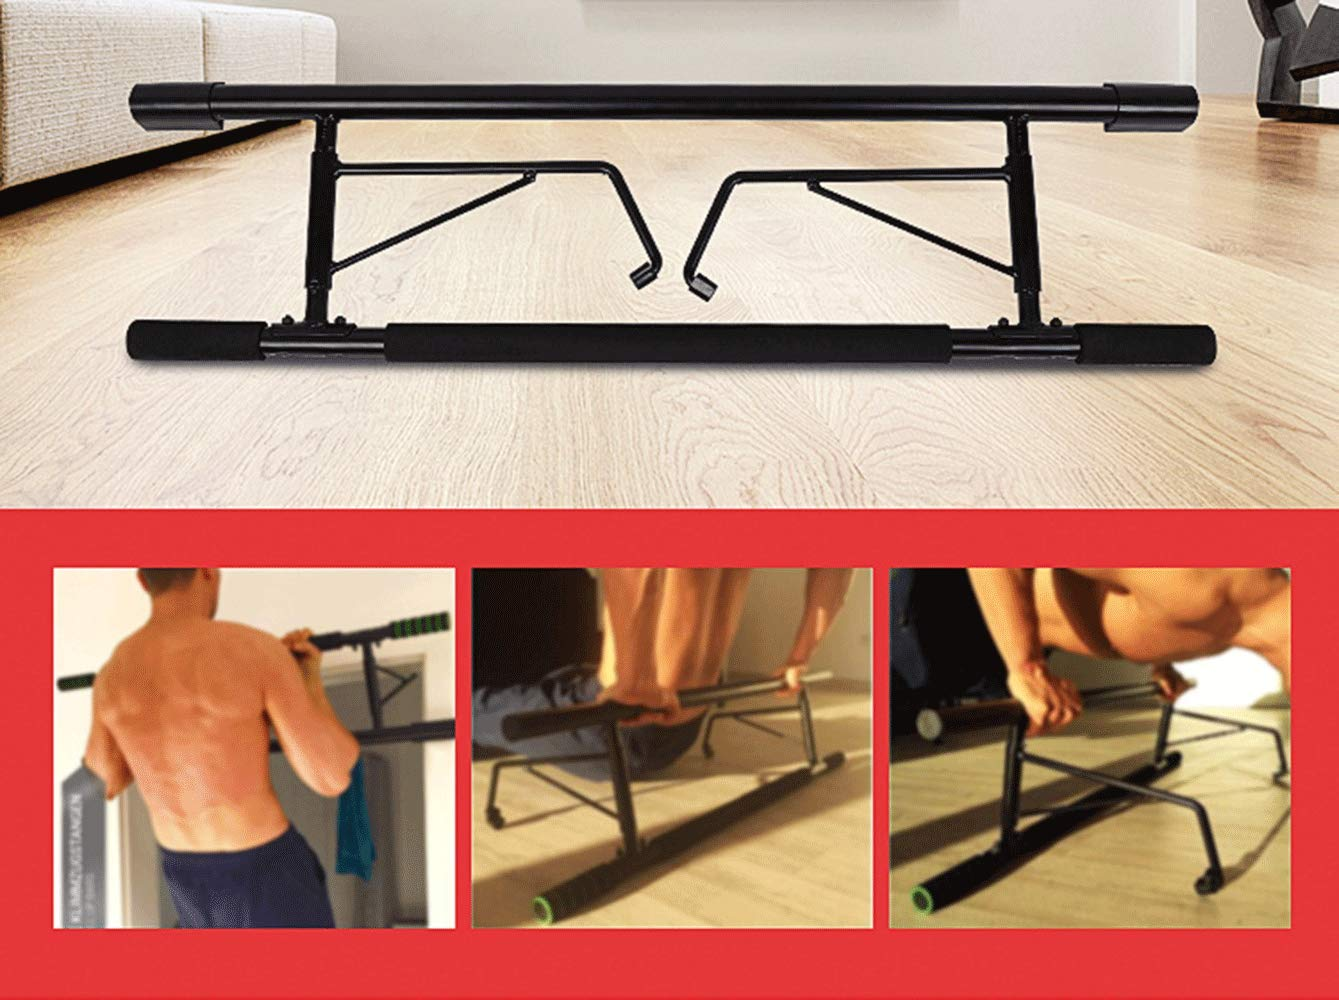 IRONWALLS Pull Up Bar Doorway Chin Up Strength Training Bars with Smart Hook Technology for Home Gym Exercise